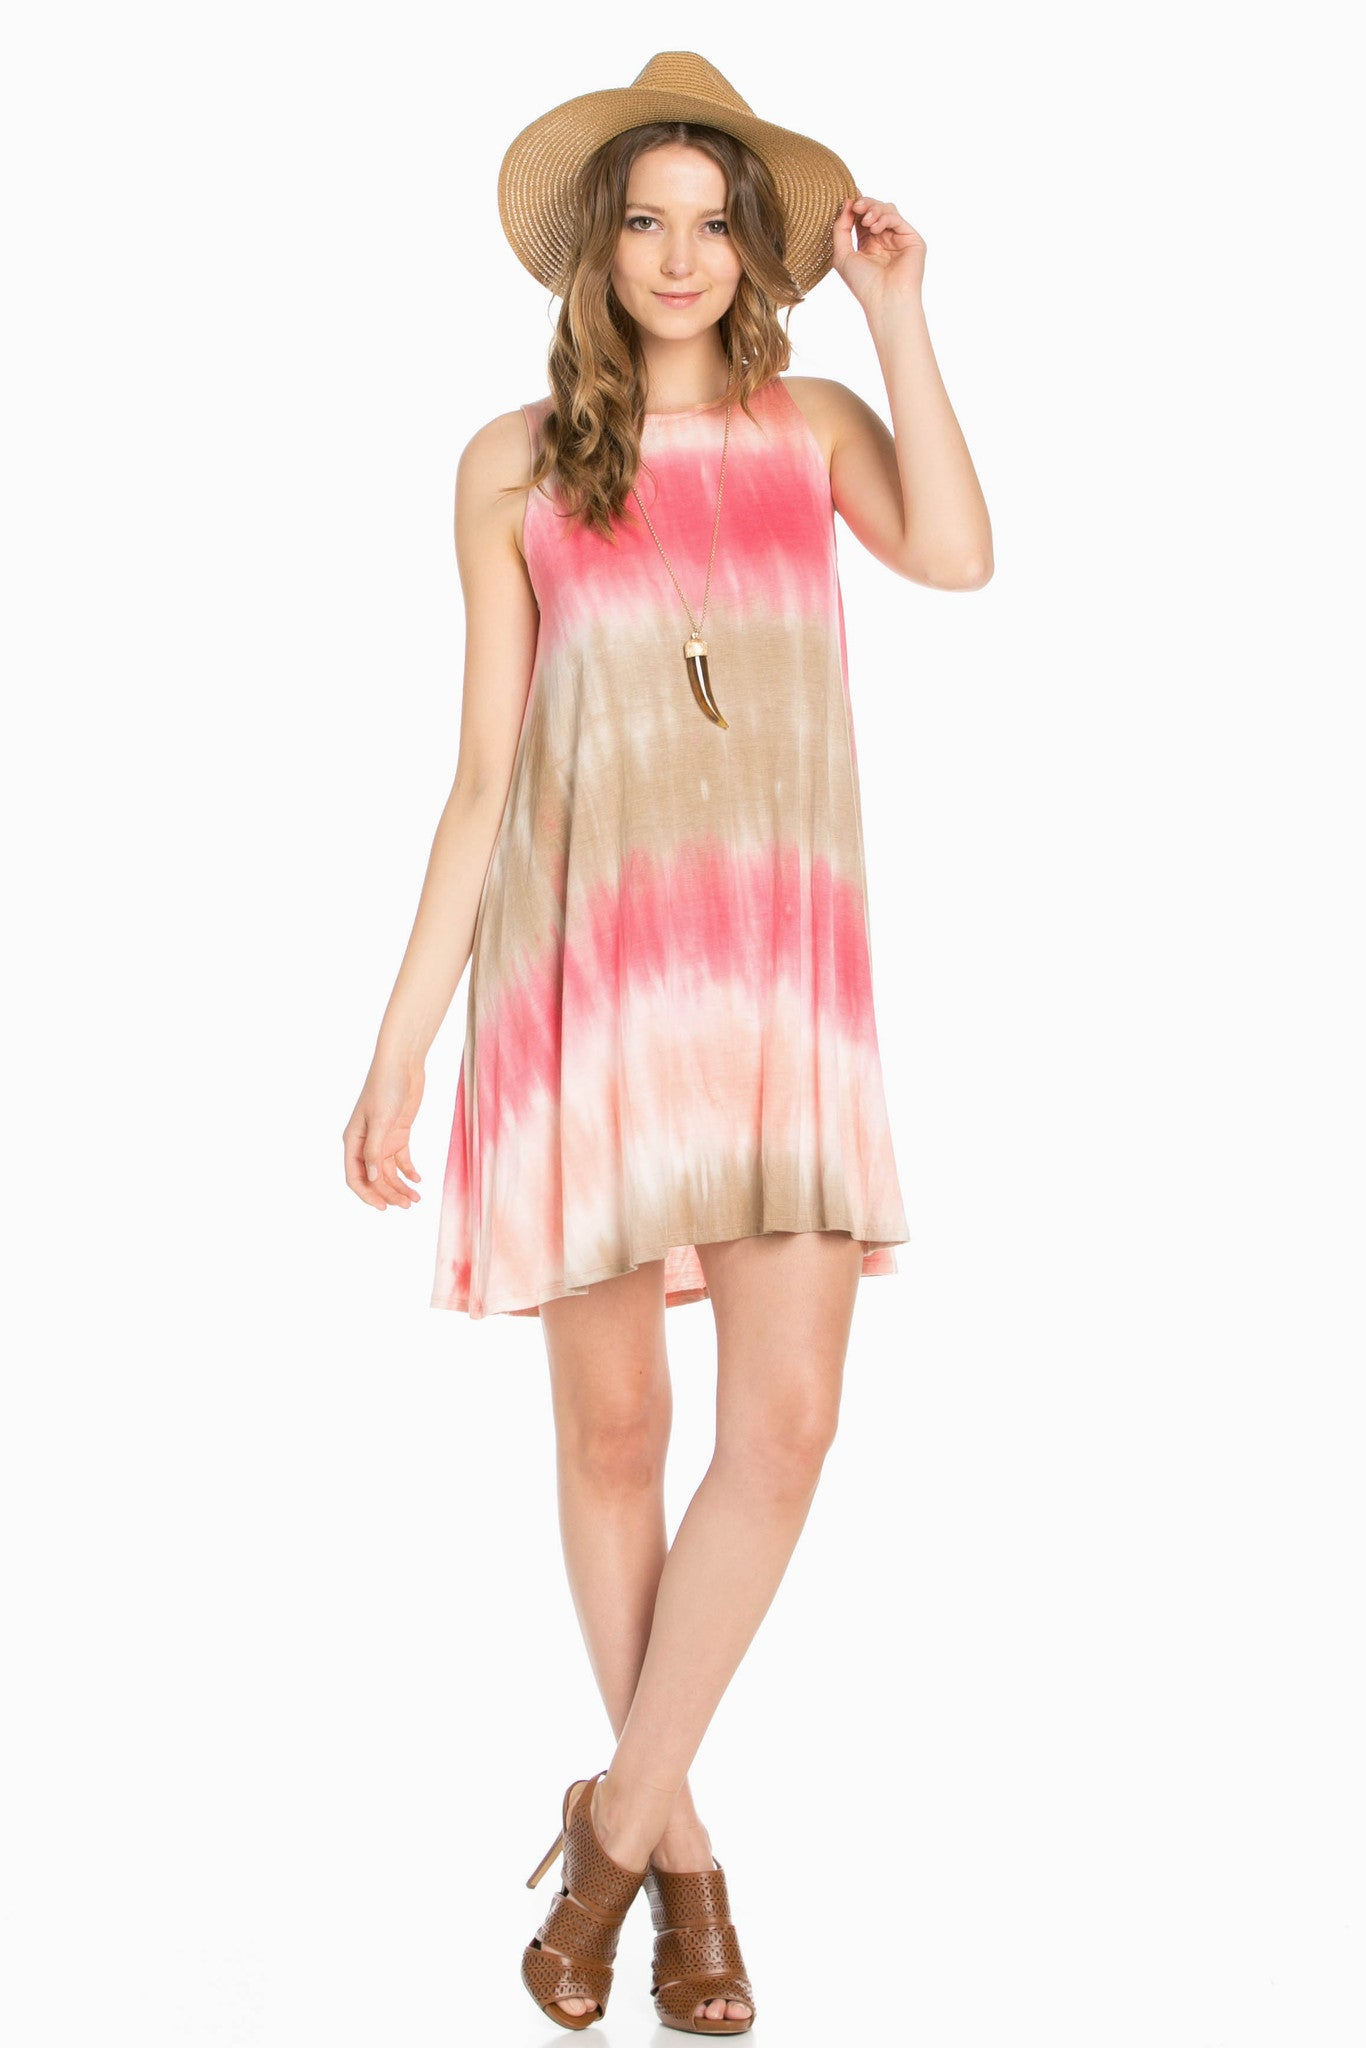 Striped Coral Tie Dye A-Line Dress - Dresses - My Yuccie - 2